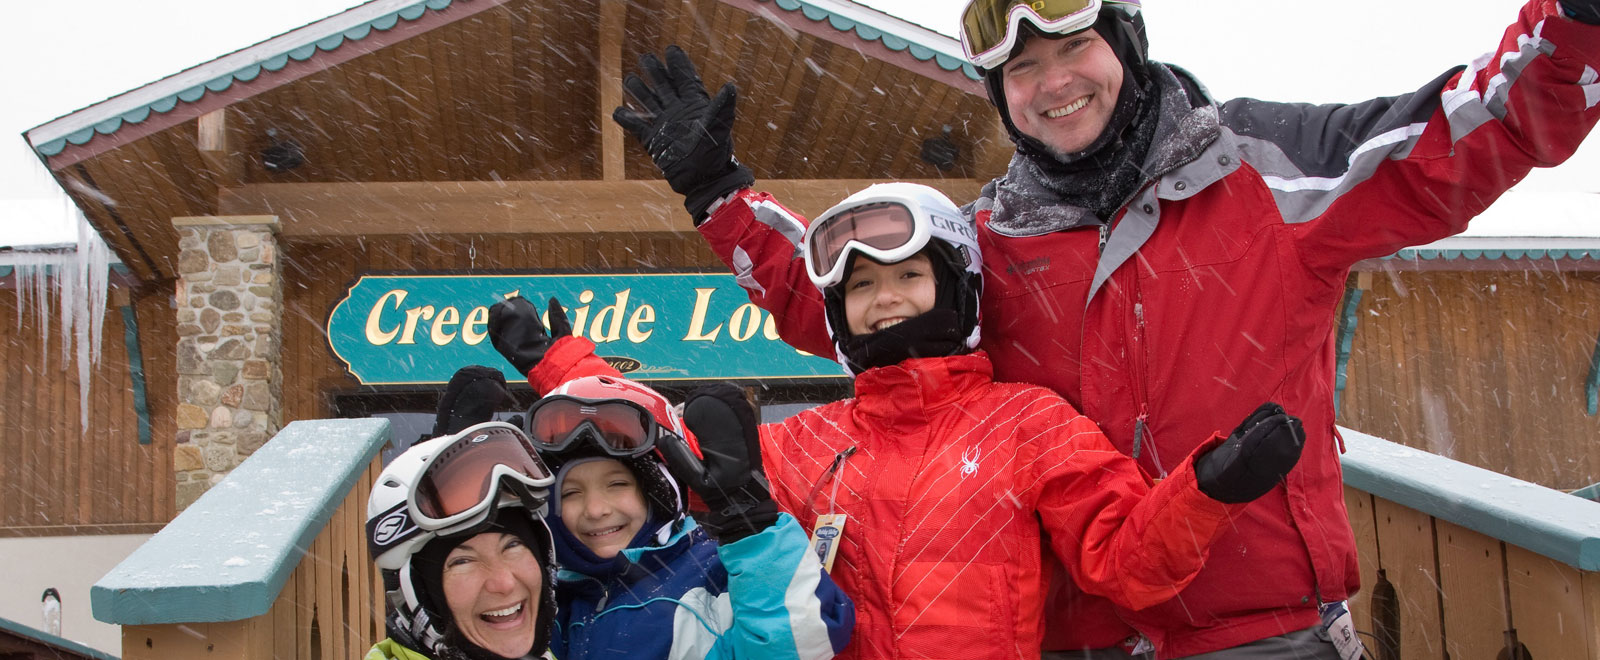 Make the Most of Winter! Season Pass Fall Rates until Sept 15.